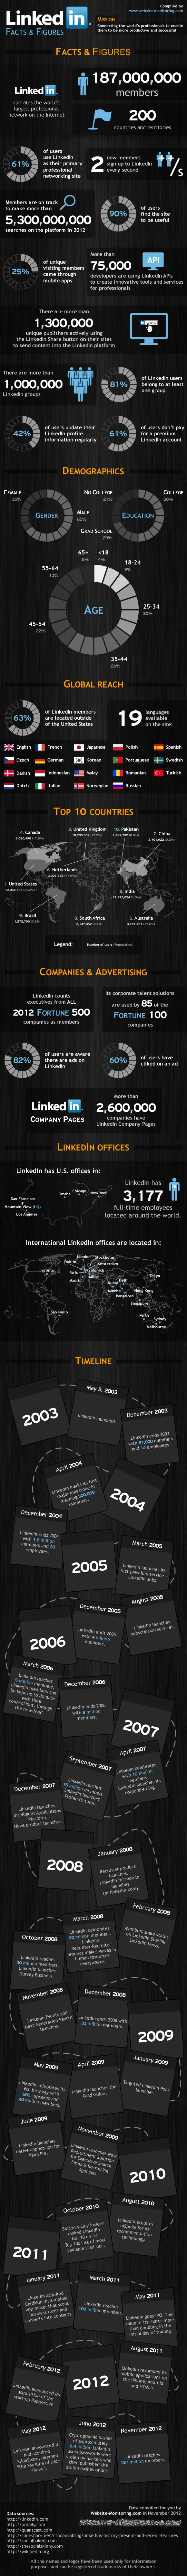 Linkedin facts and figures